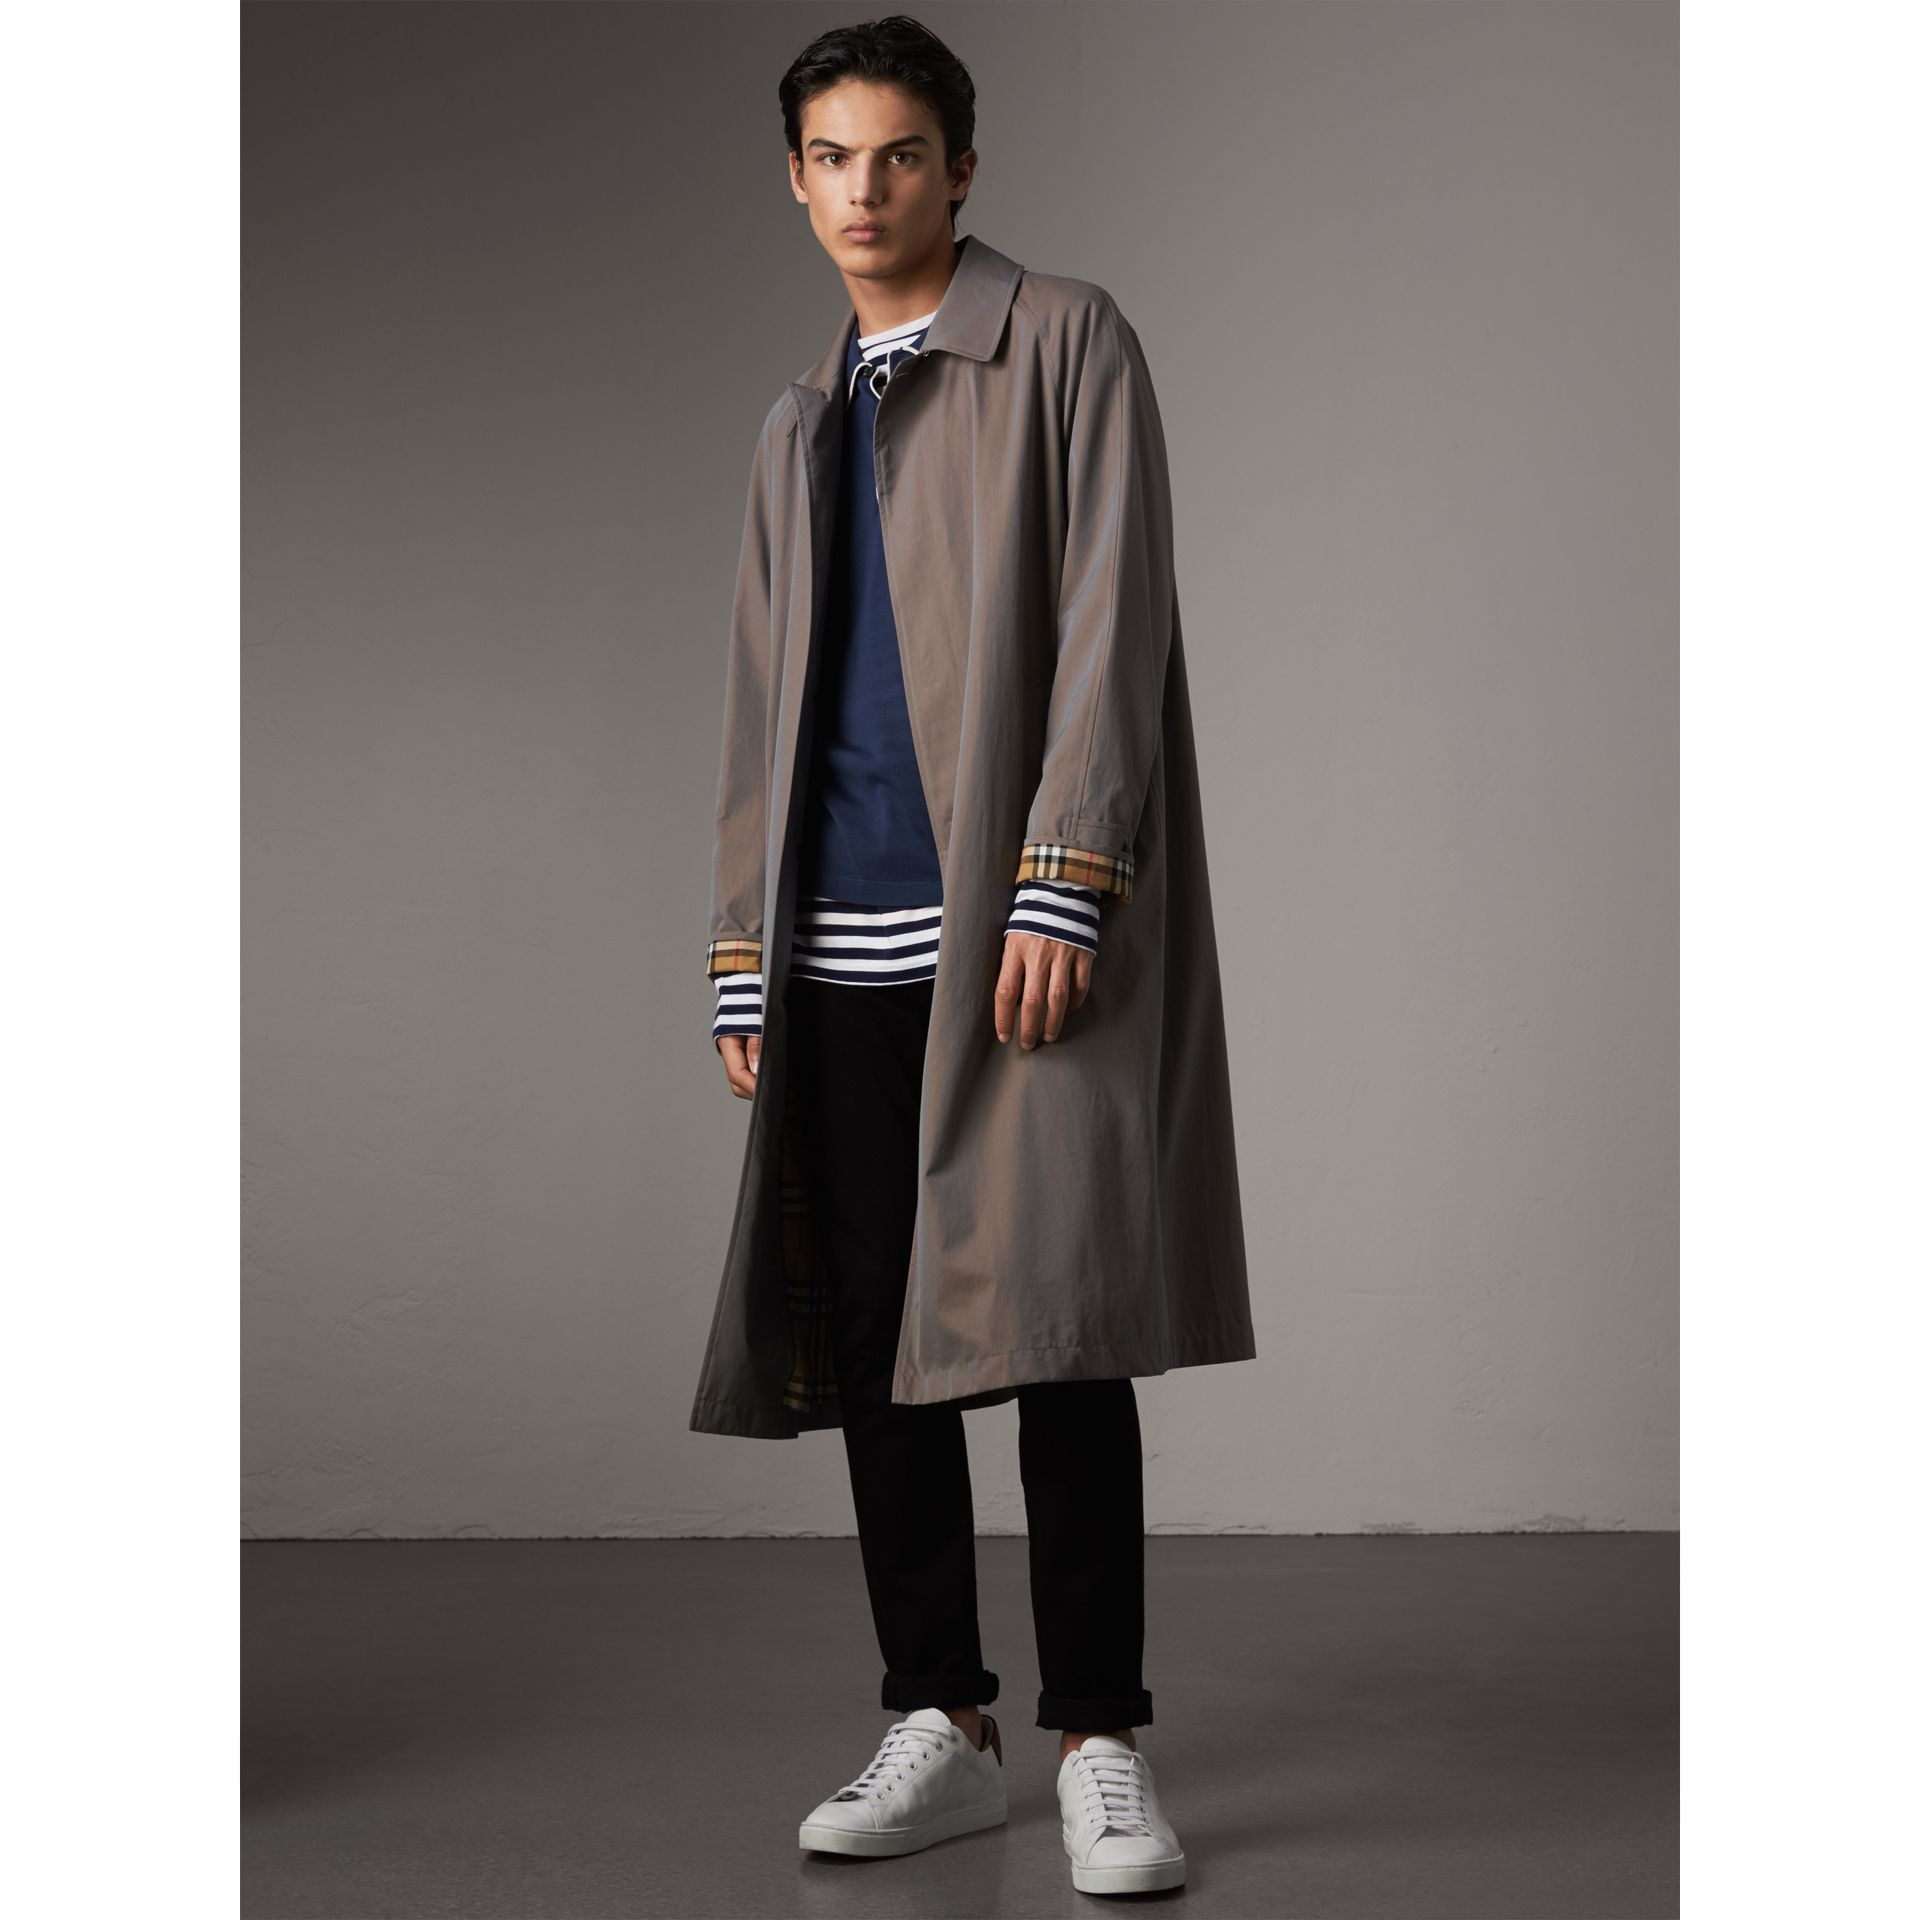 The Brighton – Car Coat extra-long – Exclusivité en ligne (Gris Lilas) - Homme | Burberry - photo de la galerie 1